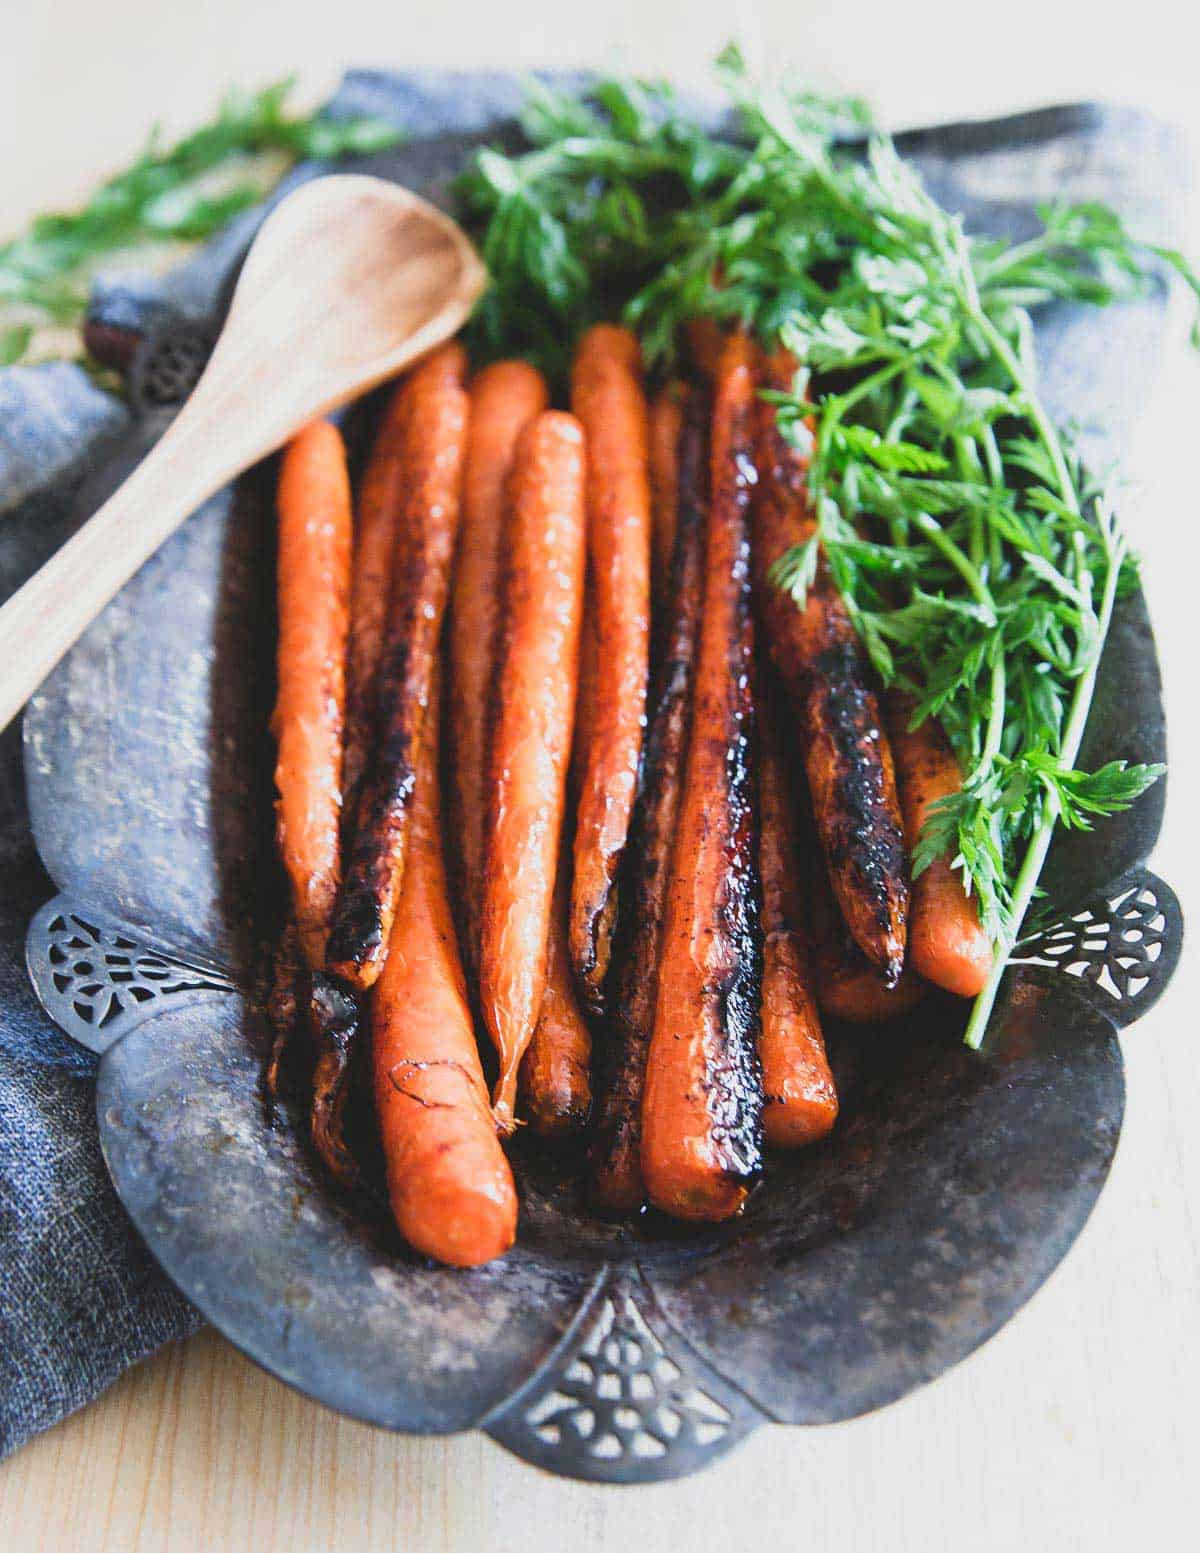 Easy stove-top candied carrots make a delicious and simple side dish to any spring meal.